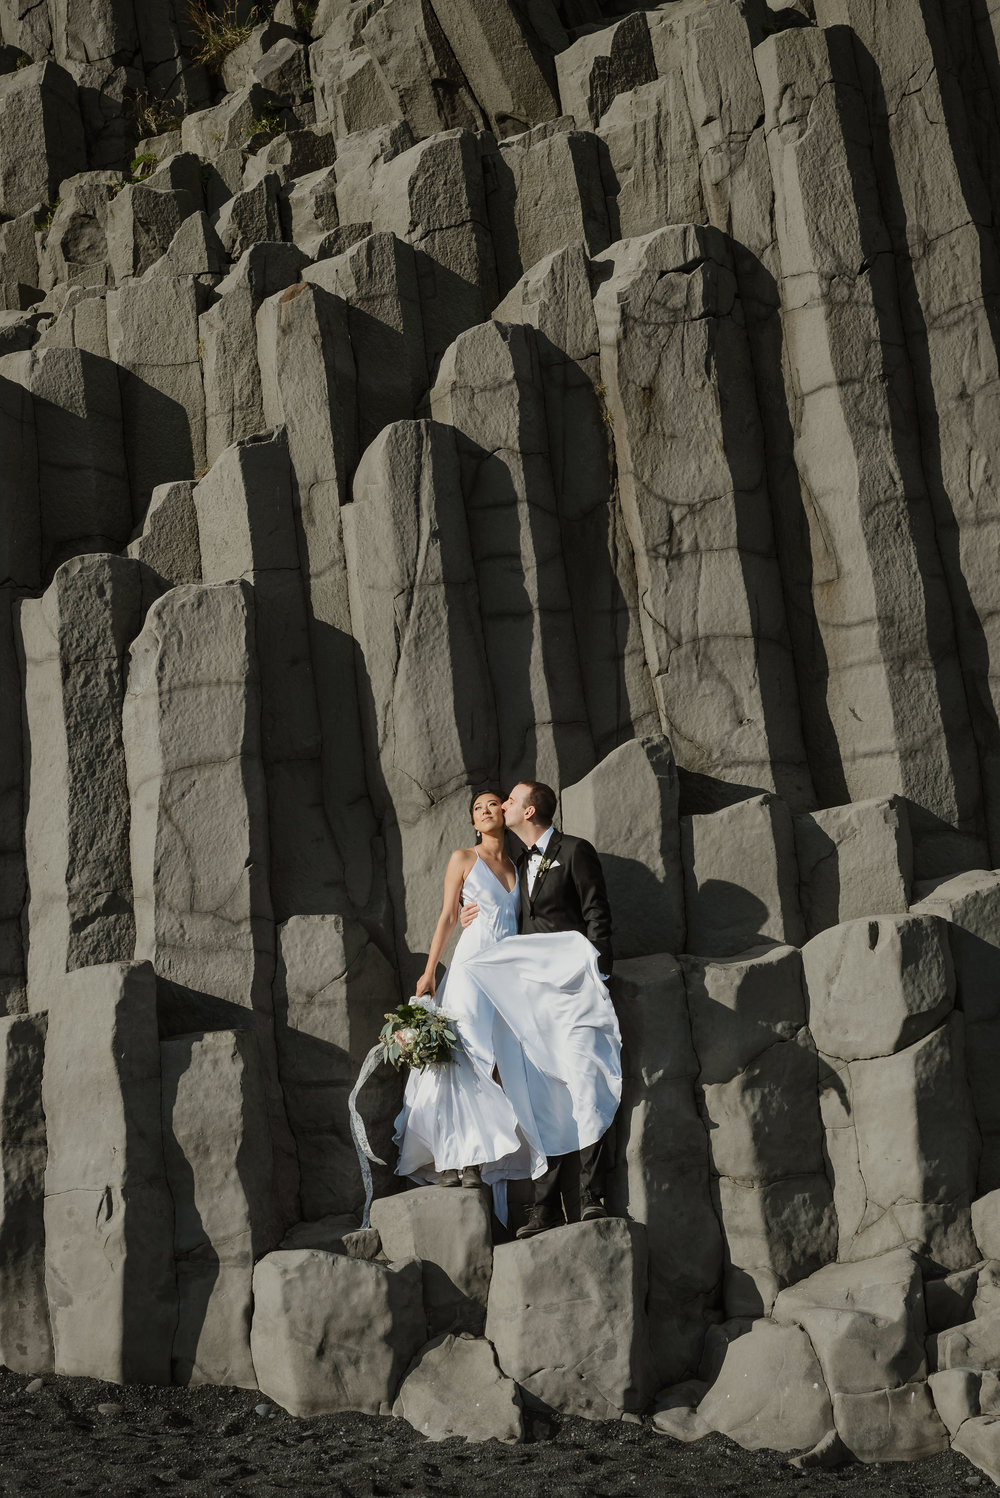 destination-wedding-iceland-engagement-session-vivianchen-167.jpg